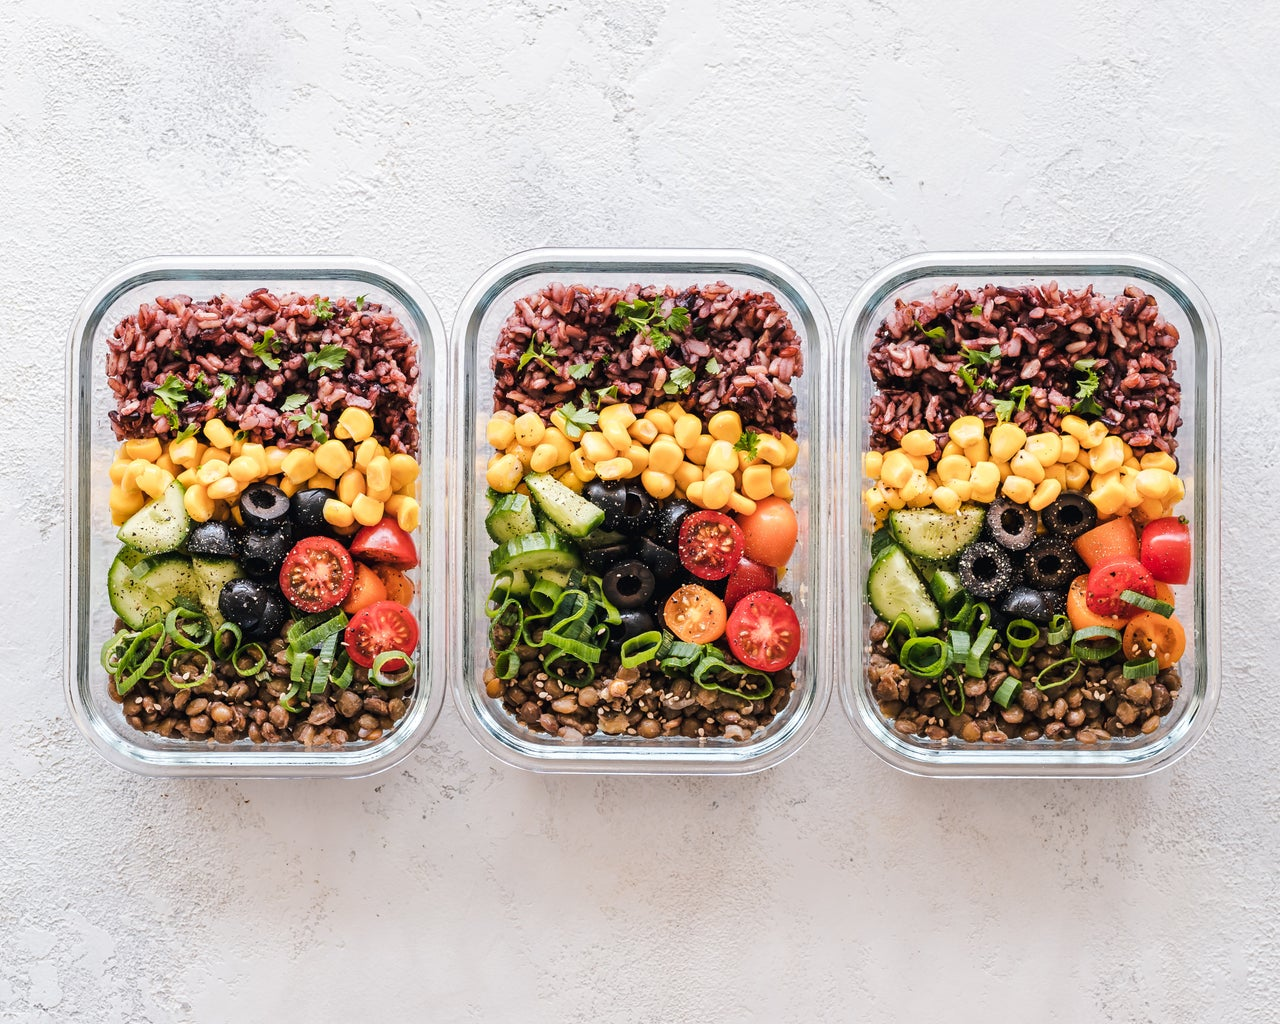 Food in reusable container